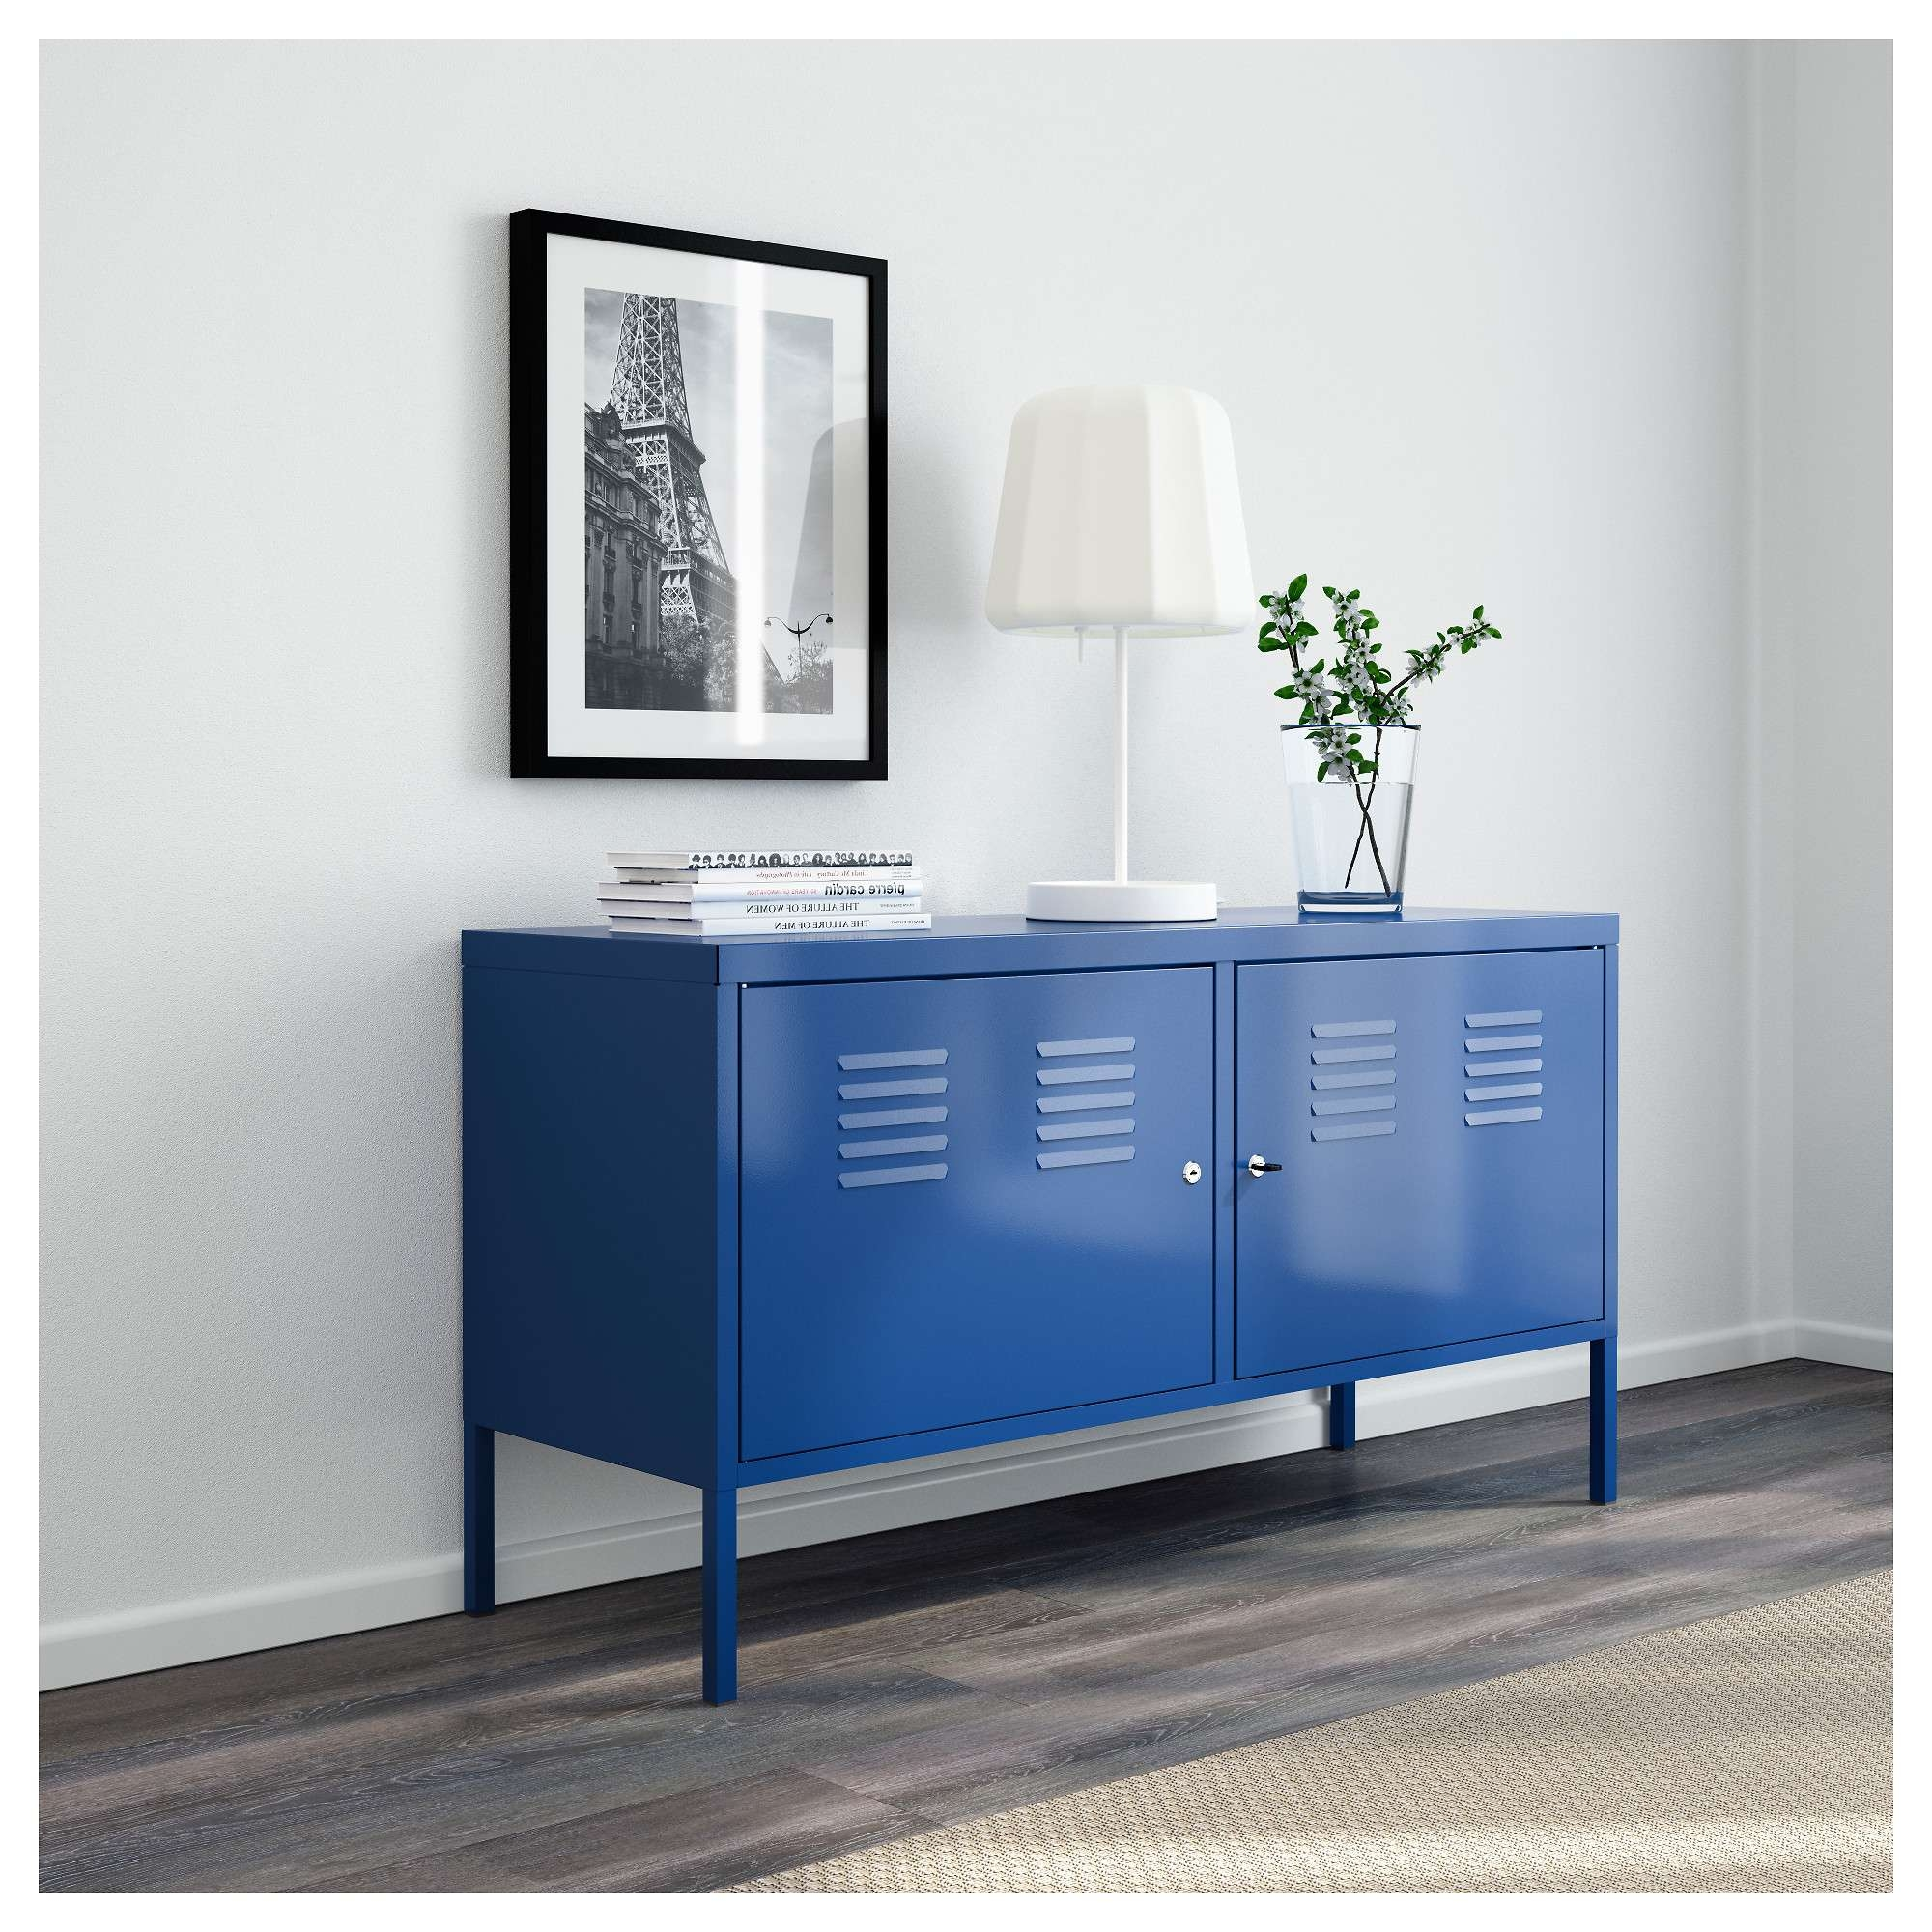 Ikea Ps Cabinet Blue 119X63 Cm – Ikea Throughout Blue Sideboards (View 7 of 20)